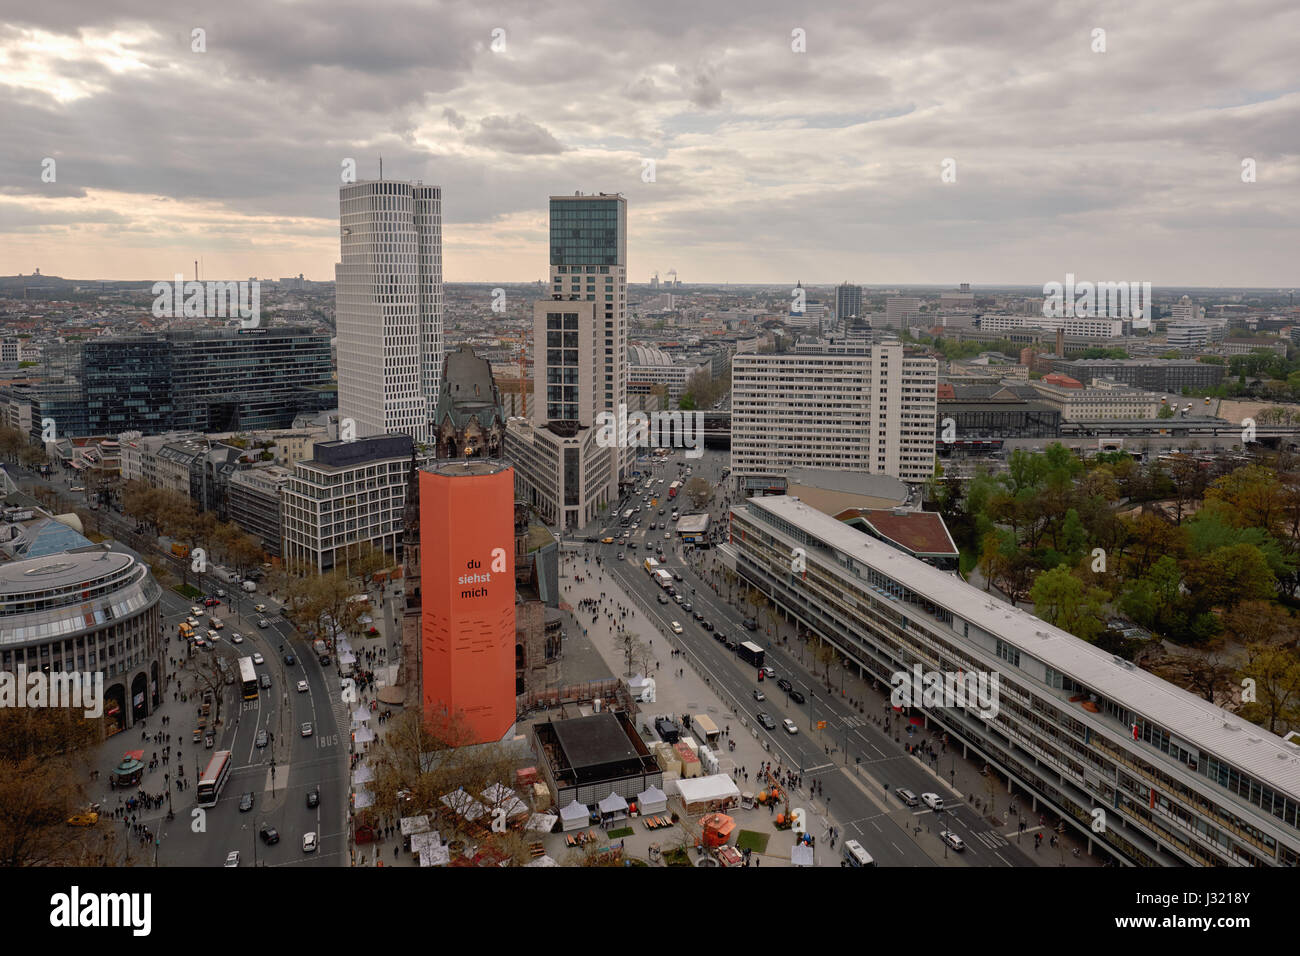 Berlin Germany 20th Apr 2017 The Hotel Motel One Left And